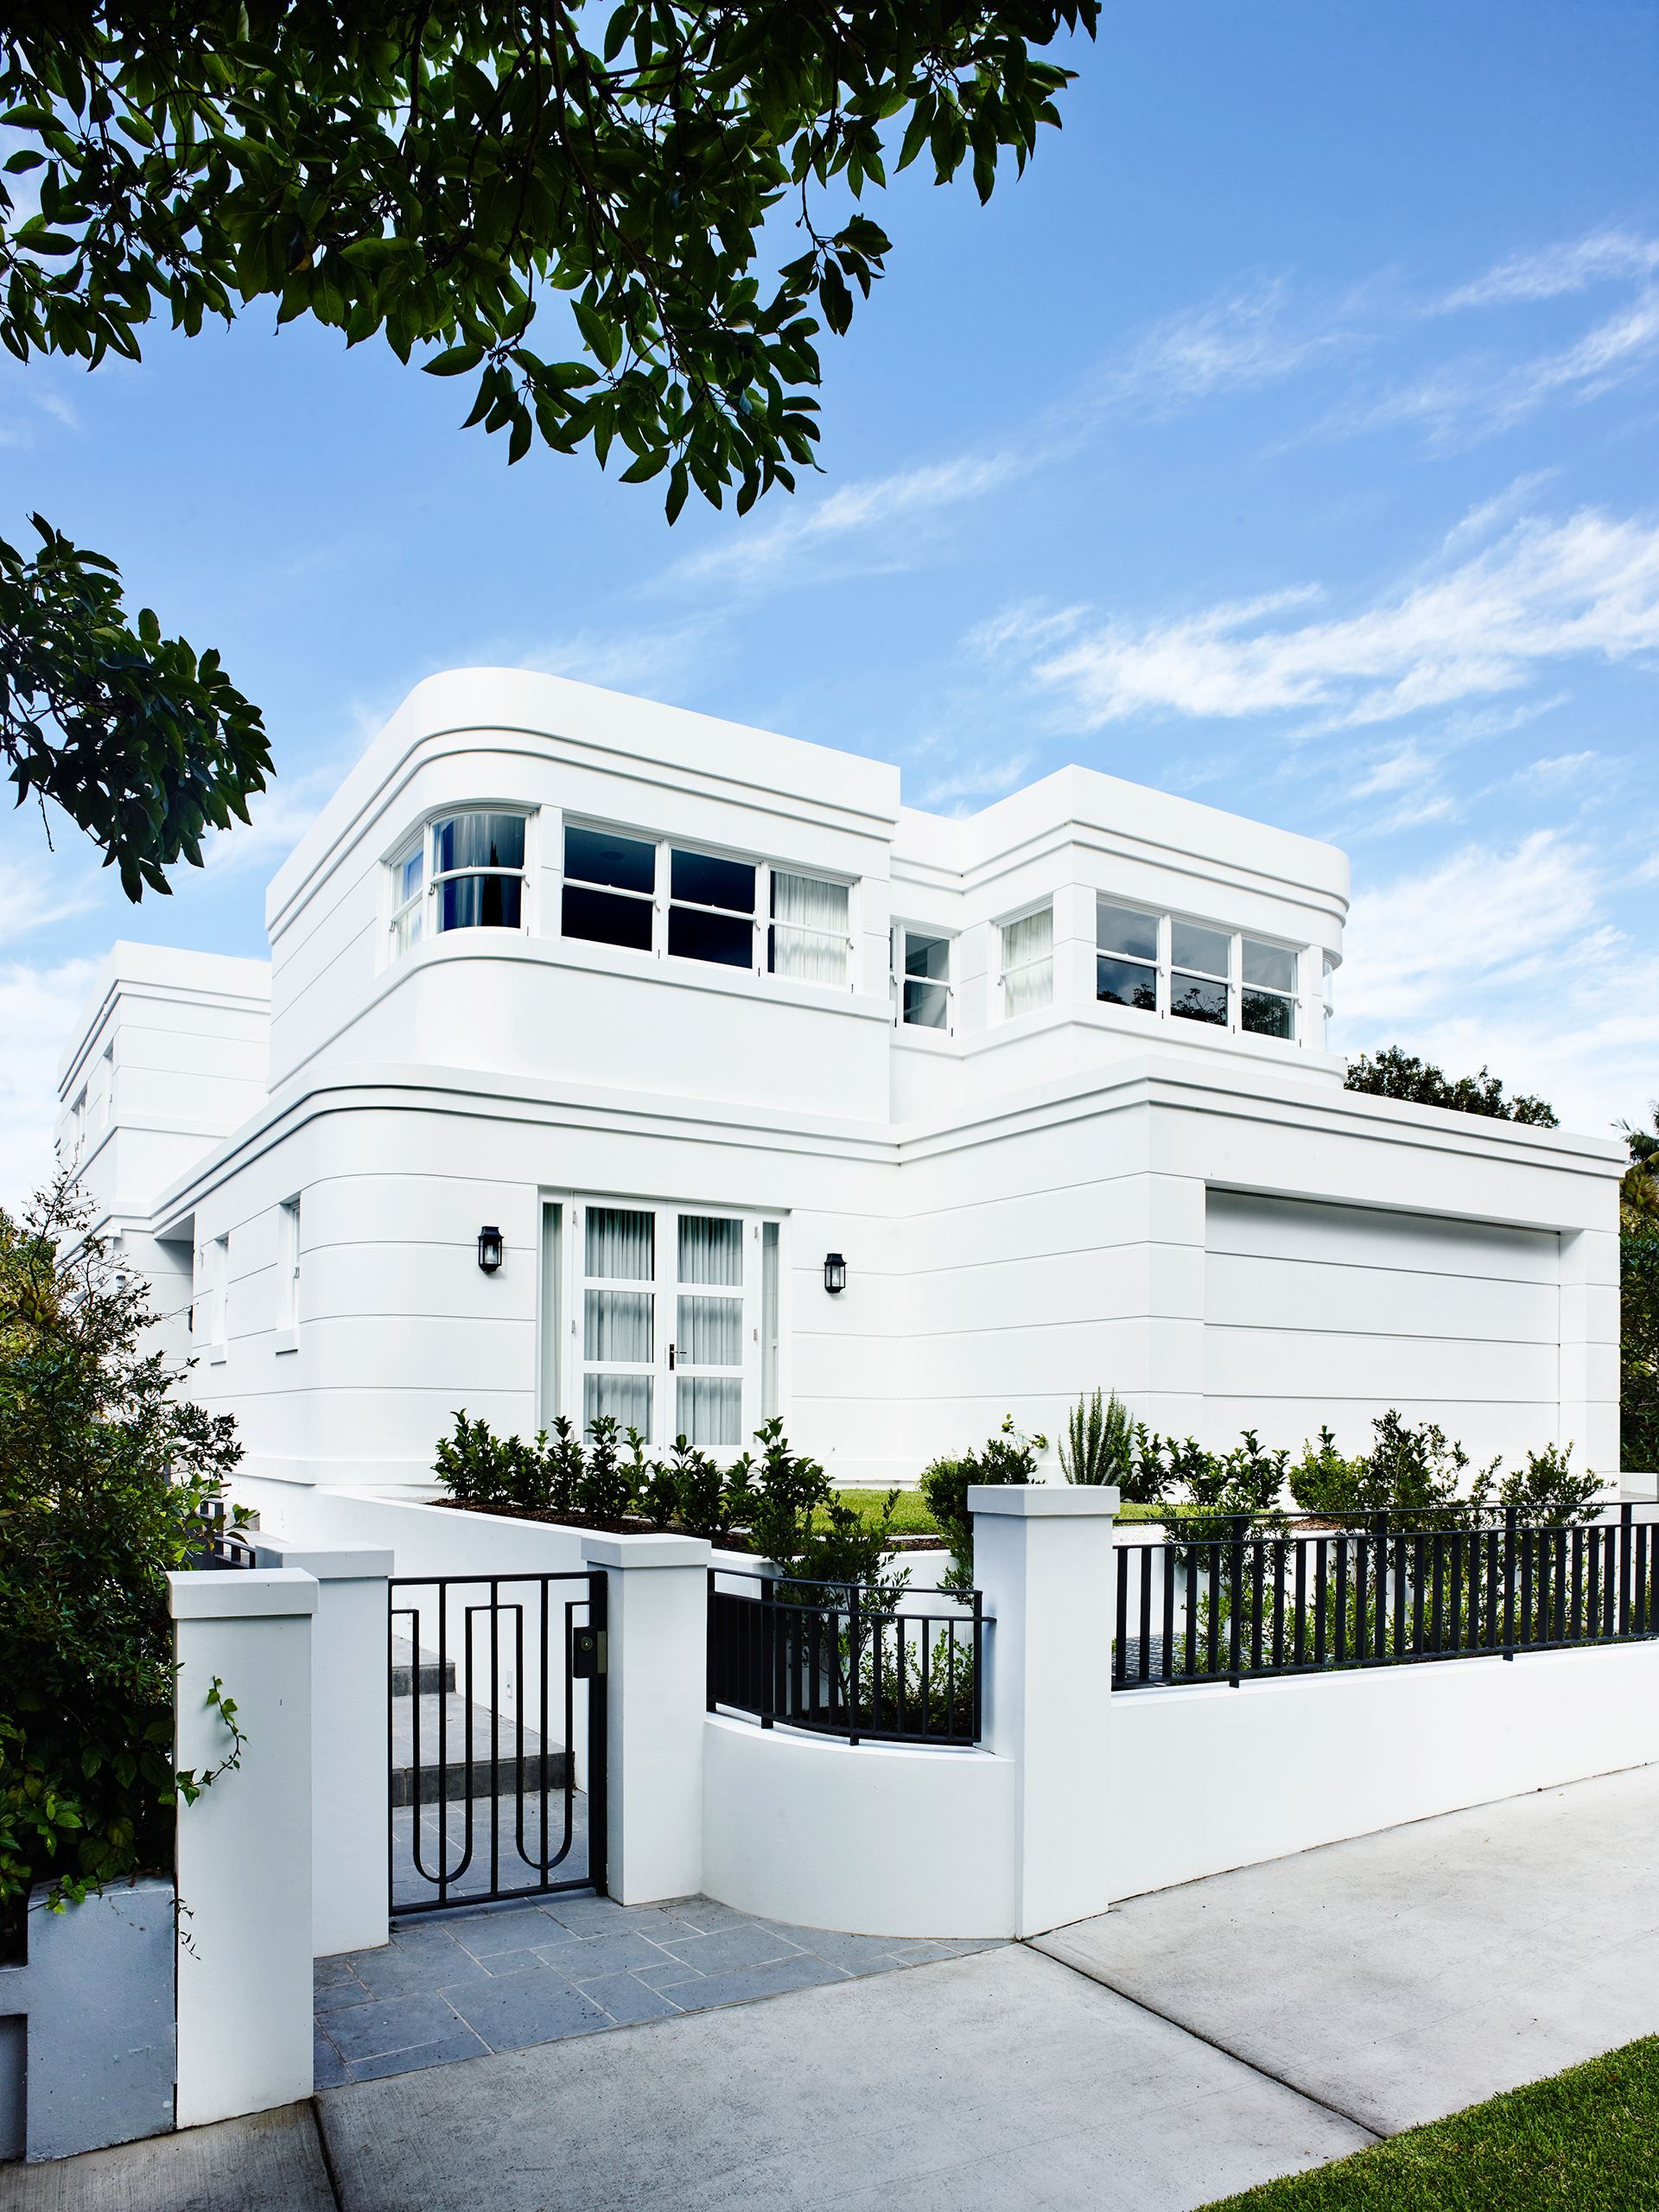 Art Deco Home In Sydneys Eastern Suburbs By Interior Designer Greg Natale Photography Anson